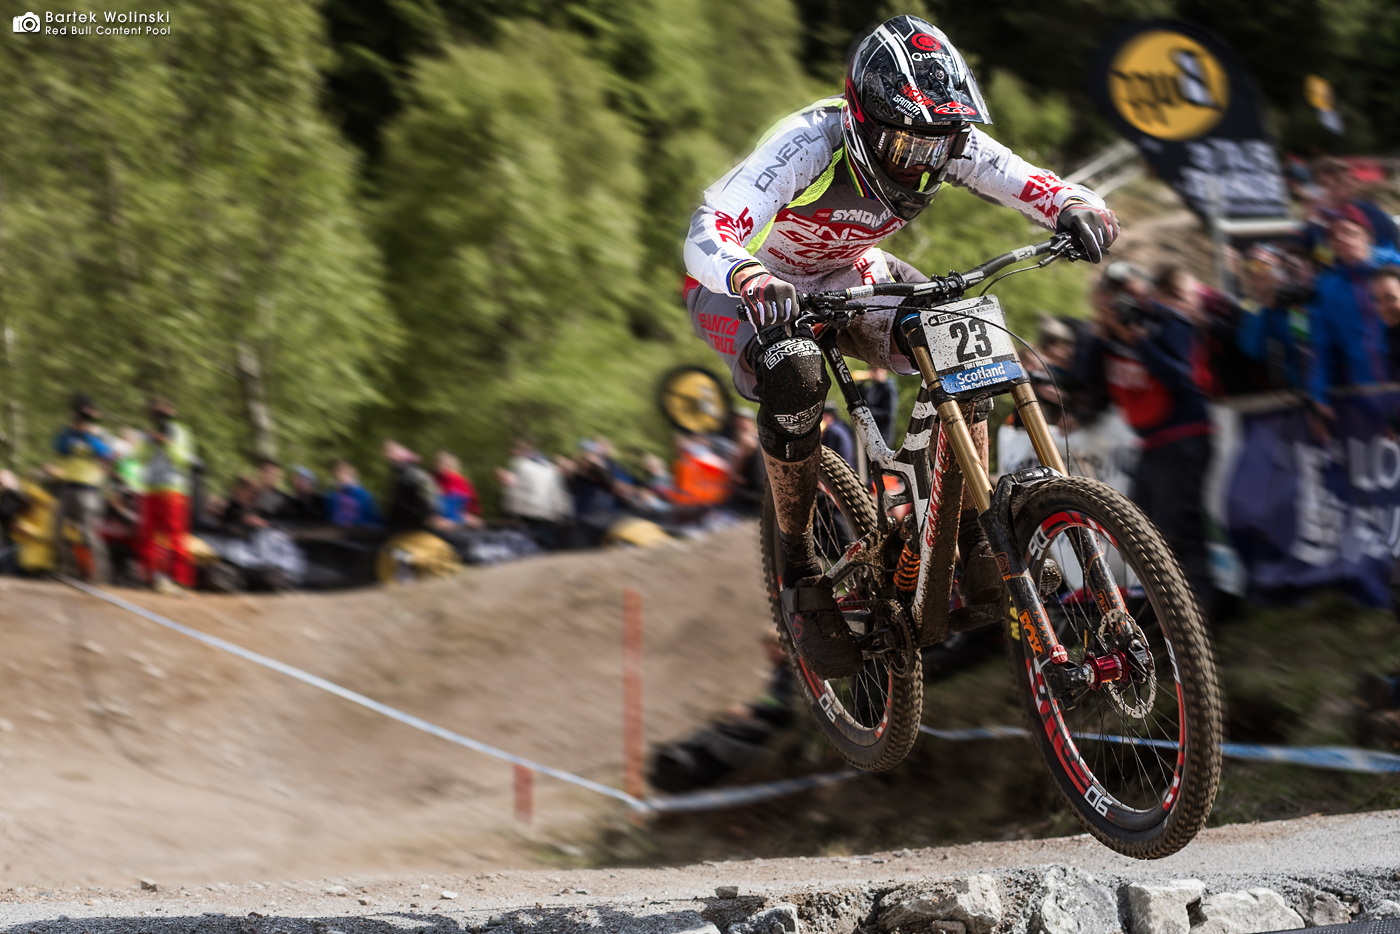 O'NEAL's Greg Minnaar celebrated his 17th World Cup victory in Fort William, which puts him equal with Steve Peat for most wins ever!